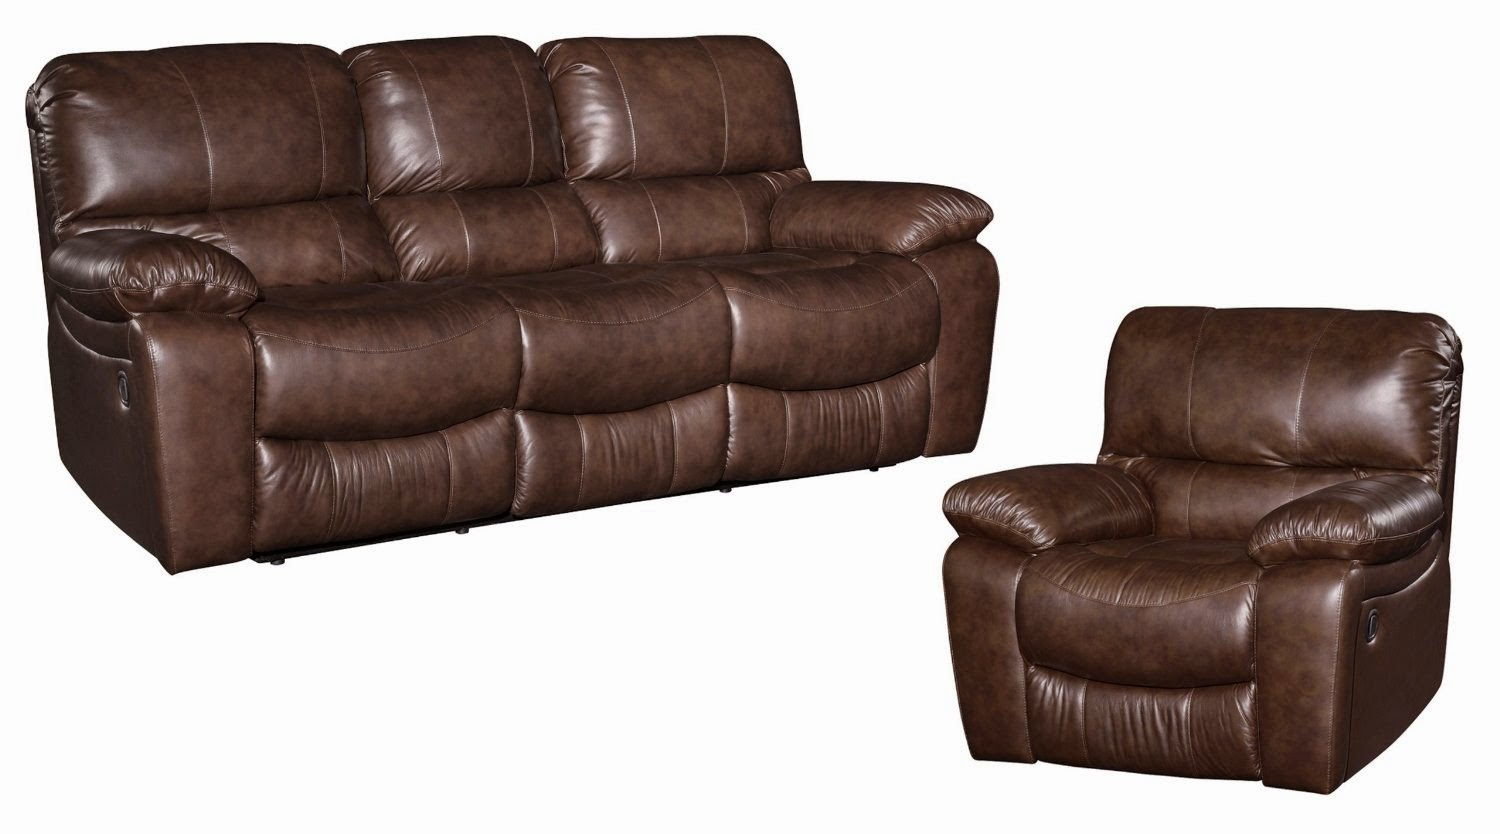 Reclining sofa sets sale leather recliner sofa sets for Couch covers for leather couches